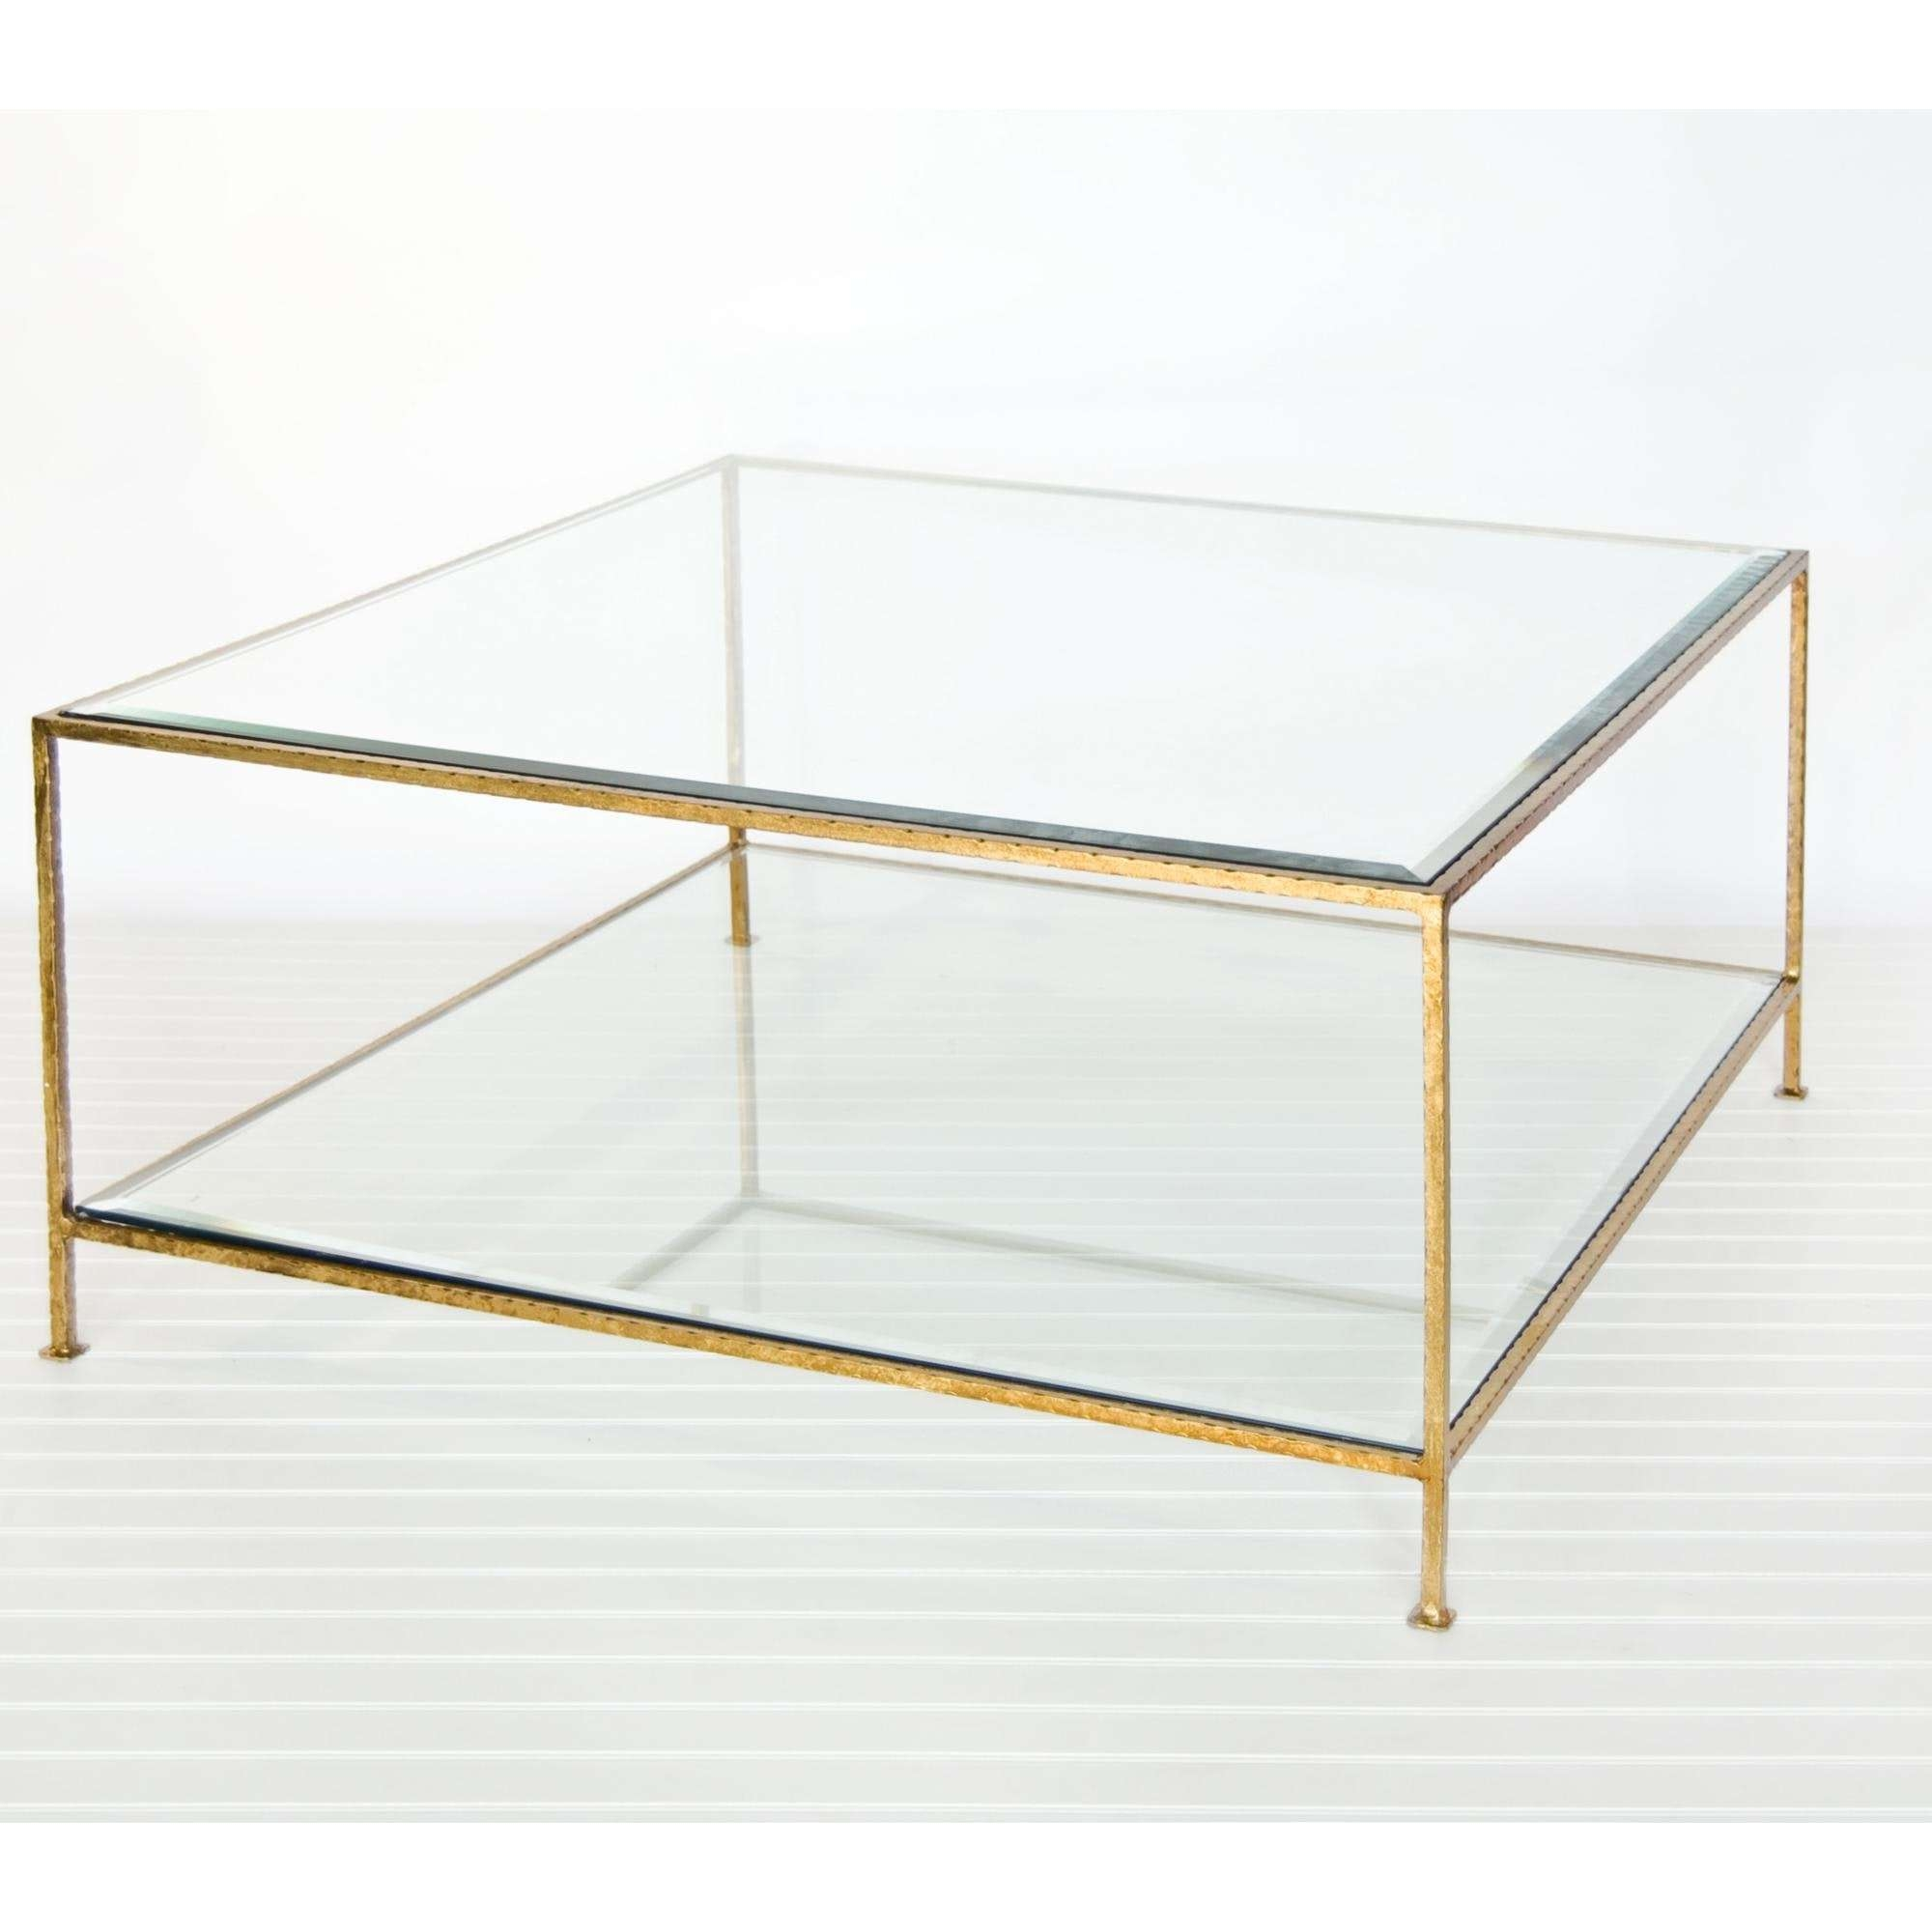 Abstract Bronze And Glass Coffee Table Mid Century Modern Images Pertaining To Newest Bronze And Glass Coffee Tables (View 2 of 20)